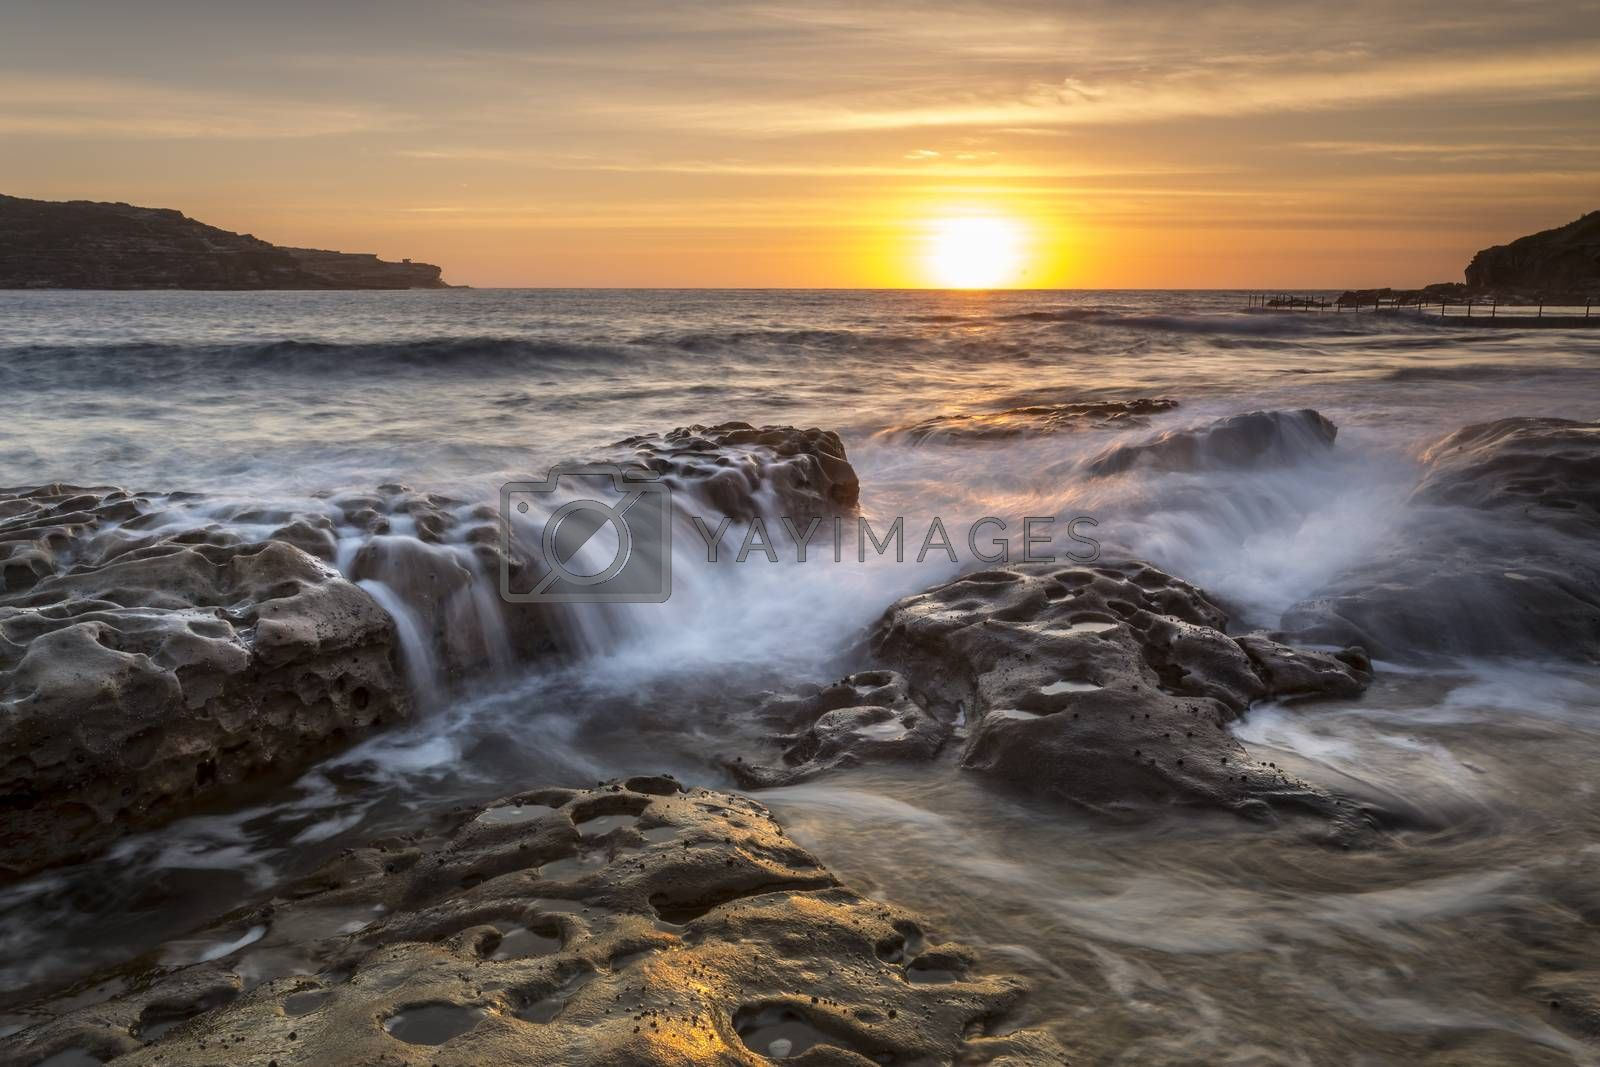 Sun rising on the horizon shining its golden light down Long Bay to Malabar with rock flows in the foreground.